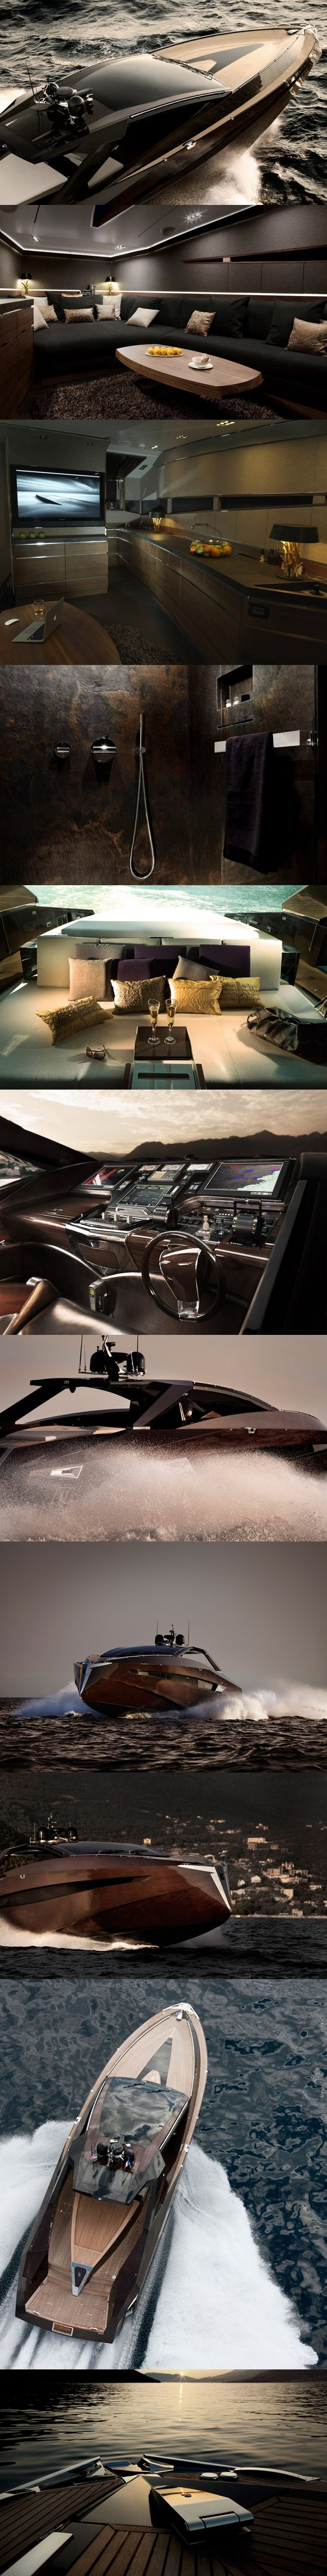 Art of Kinetik Hedonist #Yacht #luxury by Portal S